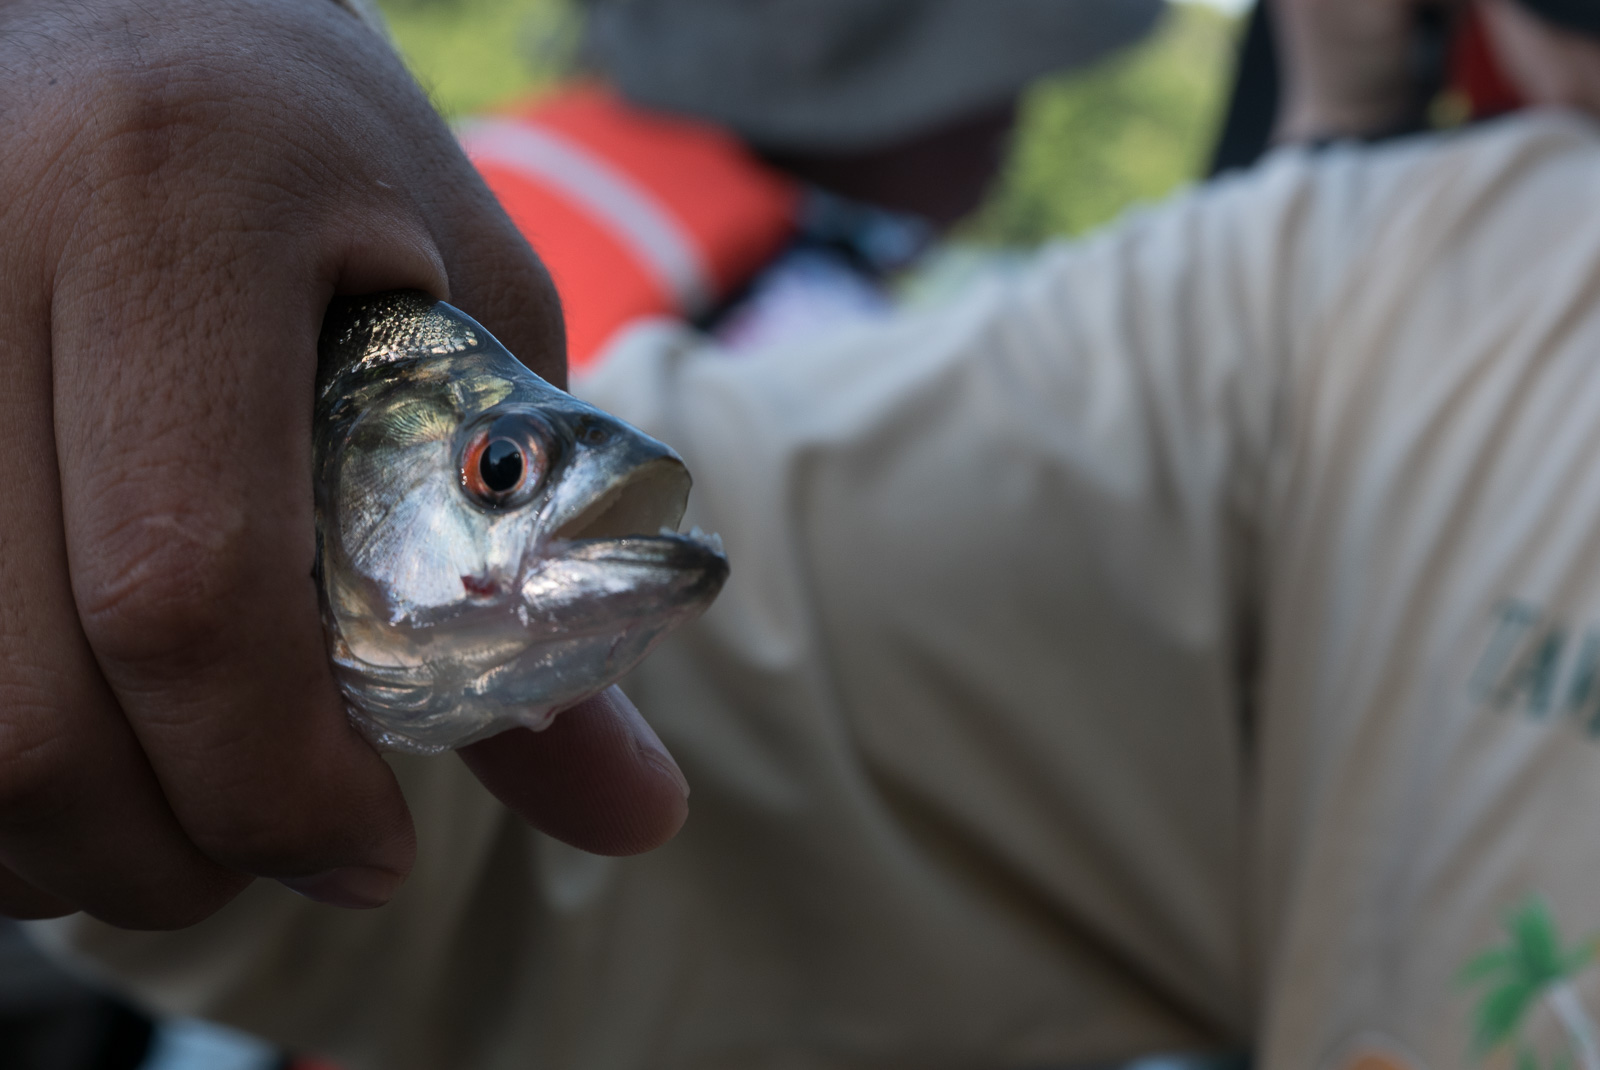 A close up of a piranha in the hands of one of our tour guides.